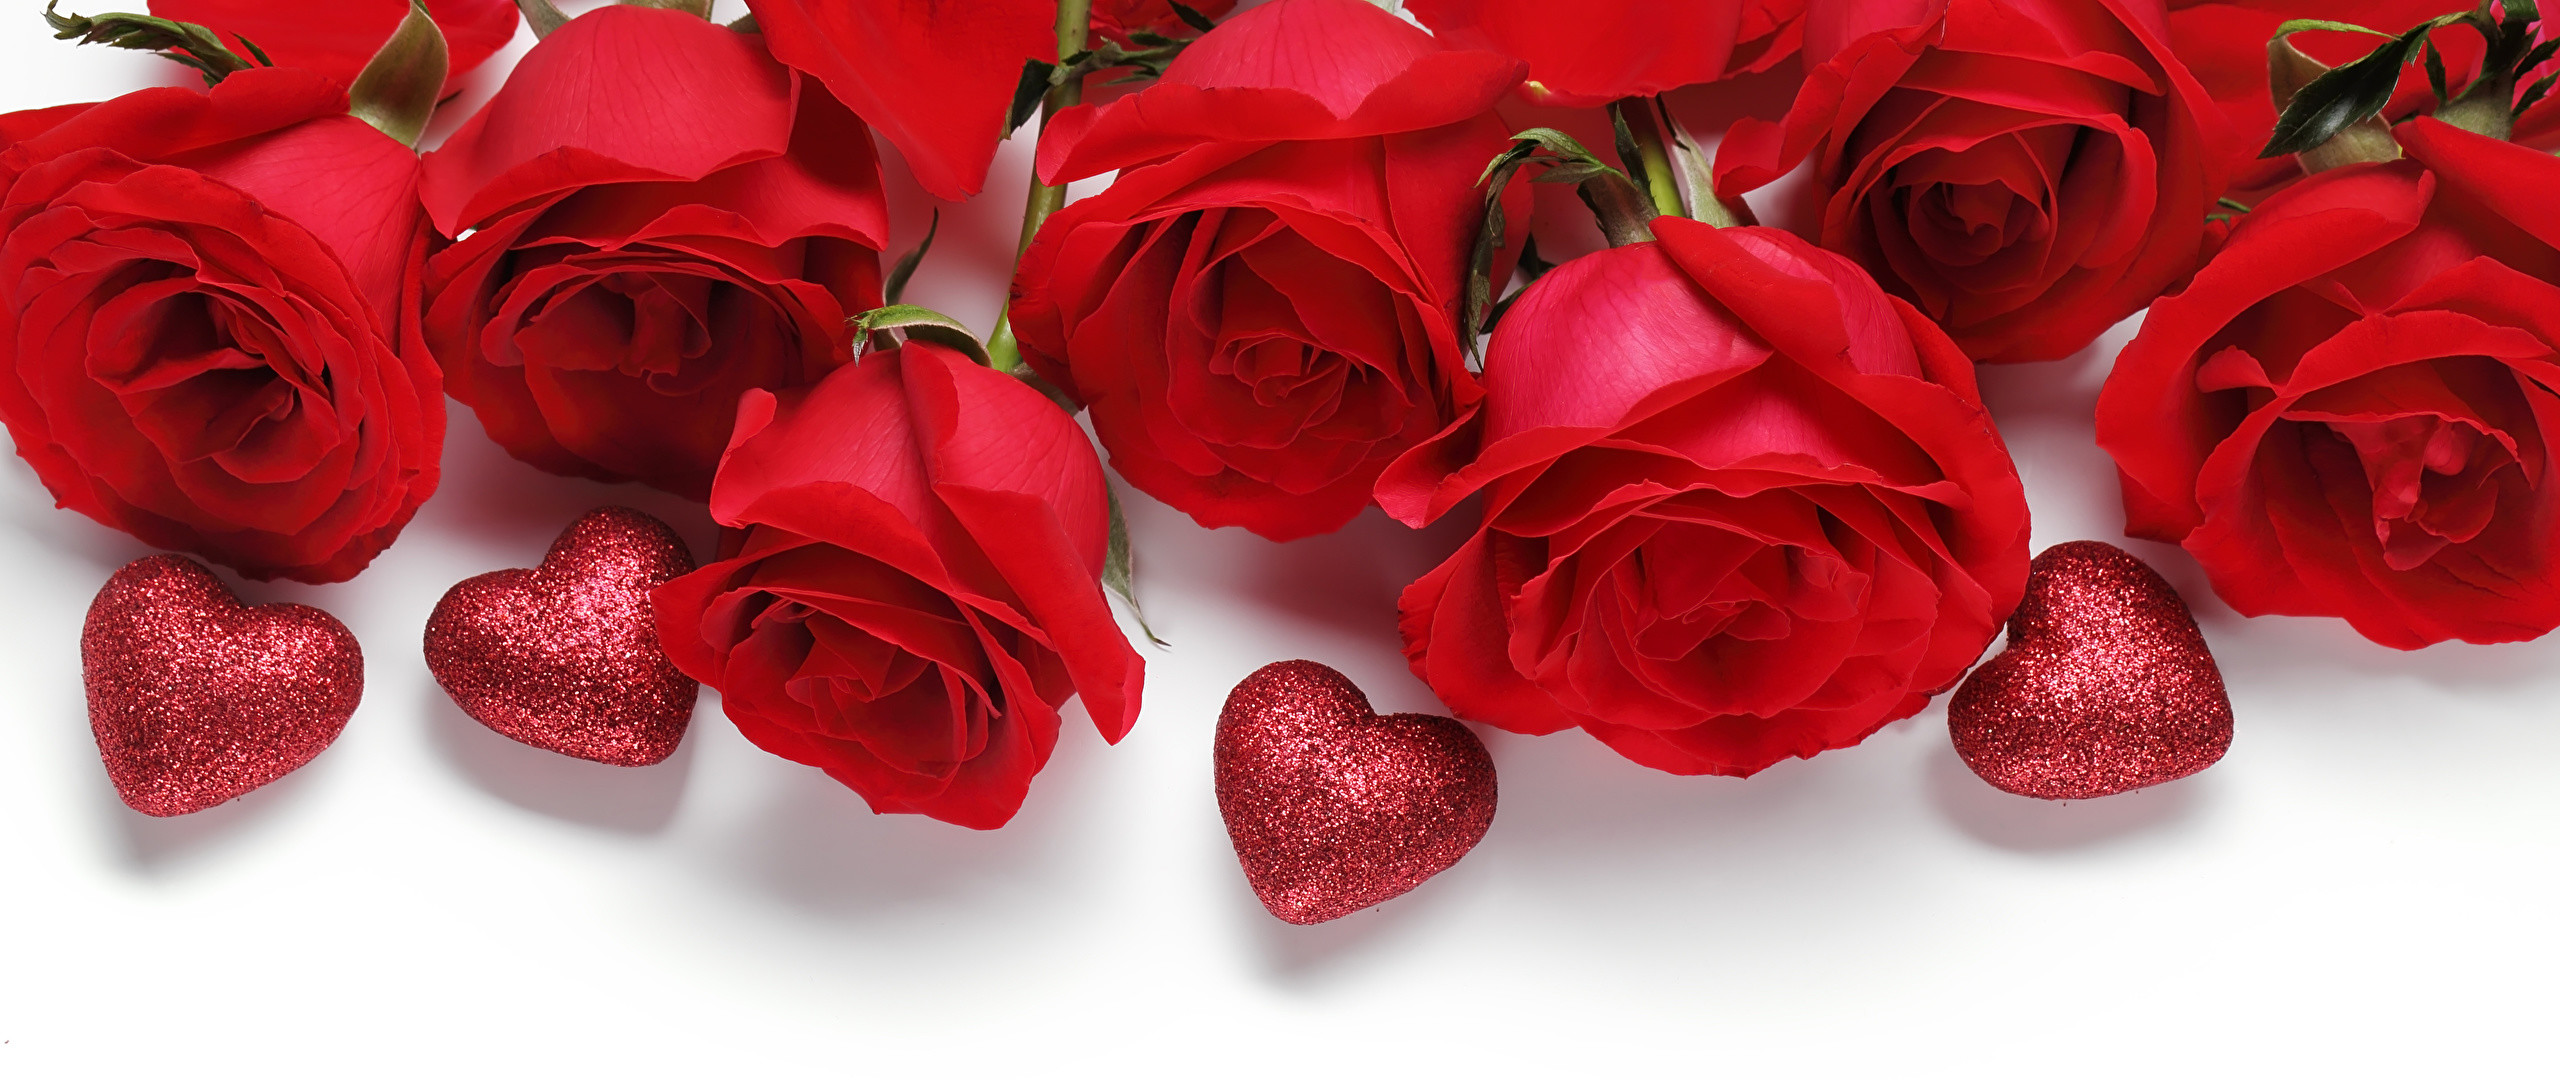 2560x1080 Wallpaper Valentine's Day Heart Red Roses Flowers White background